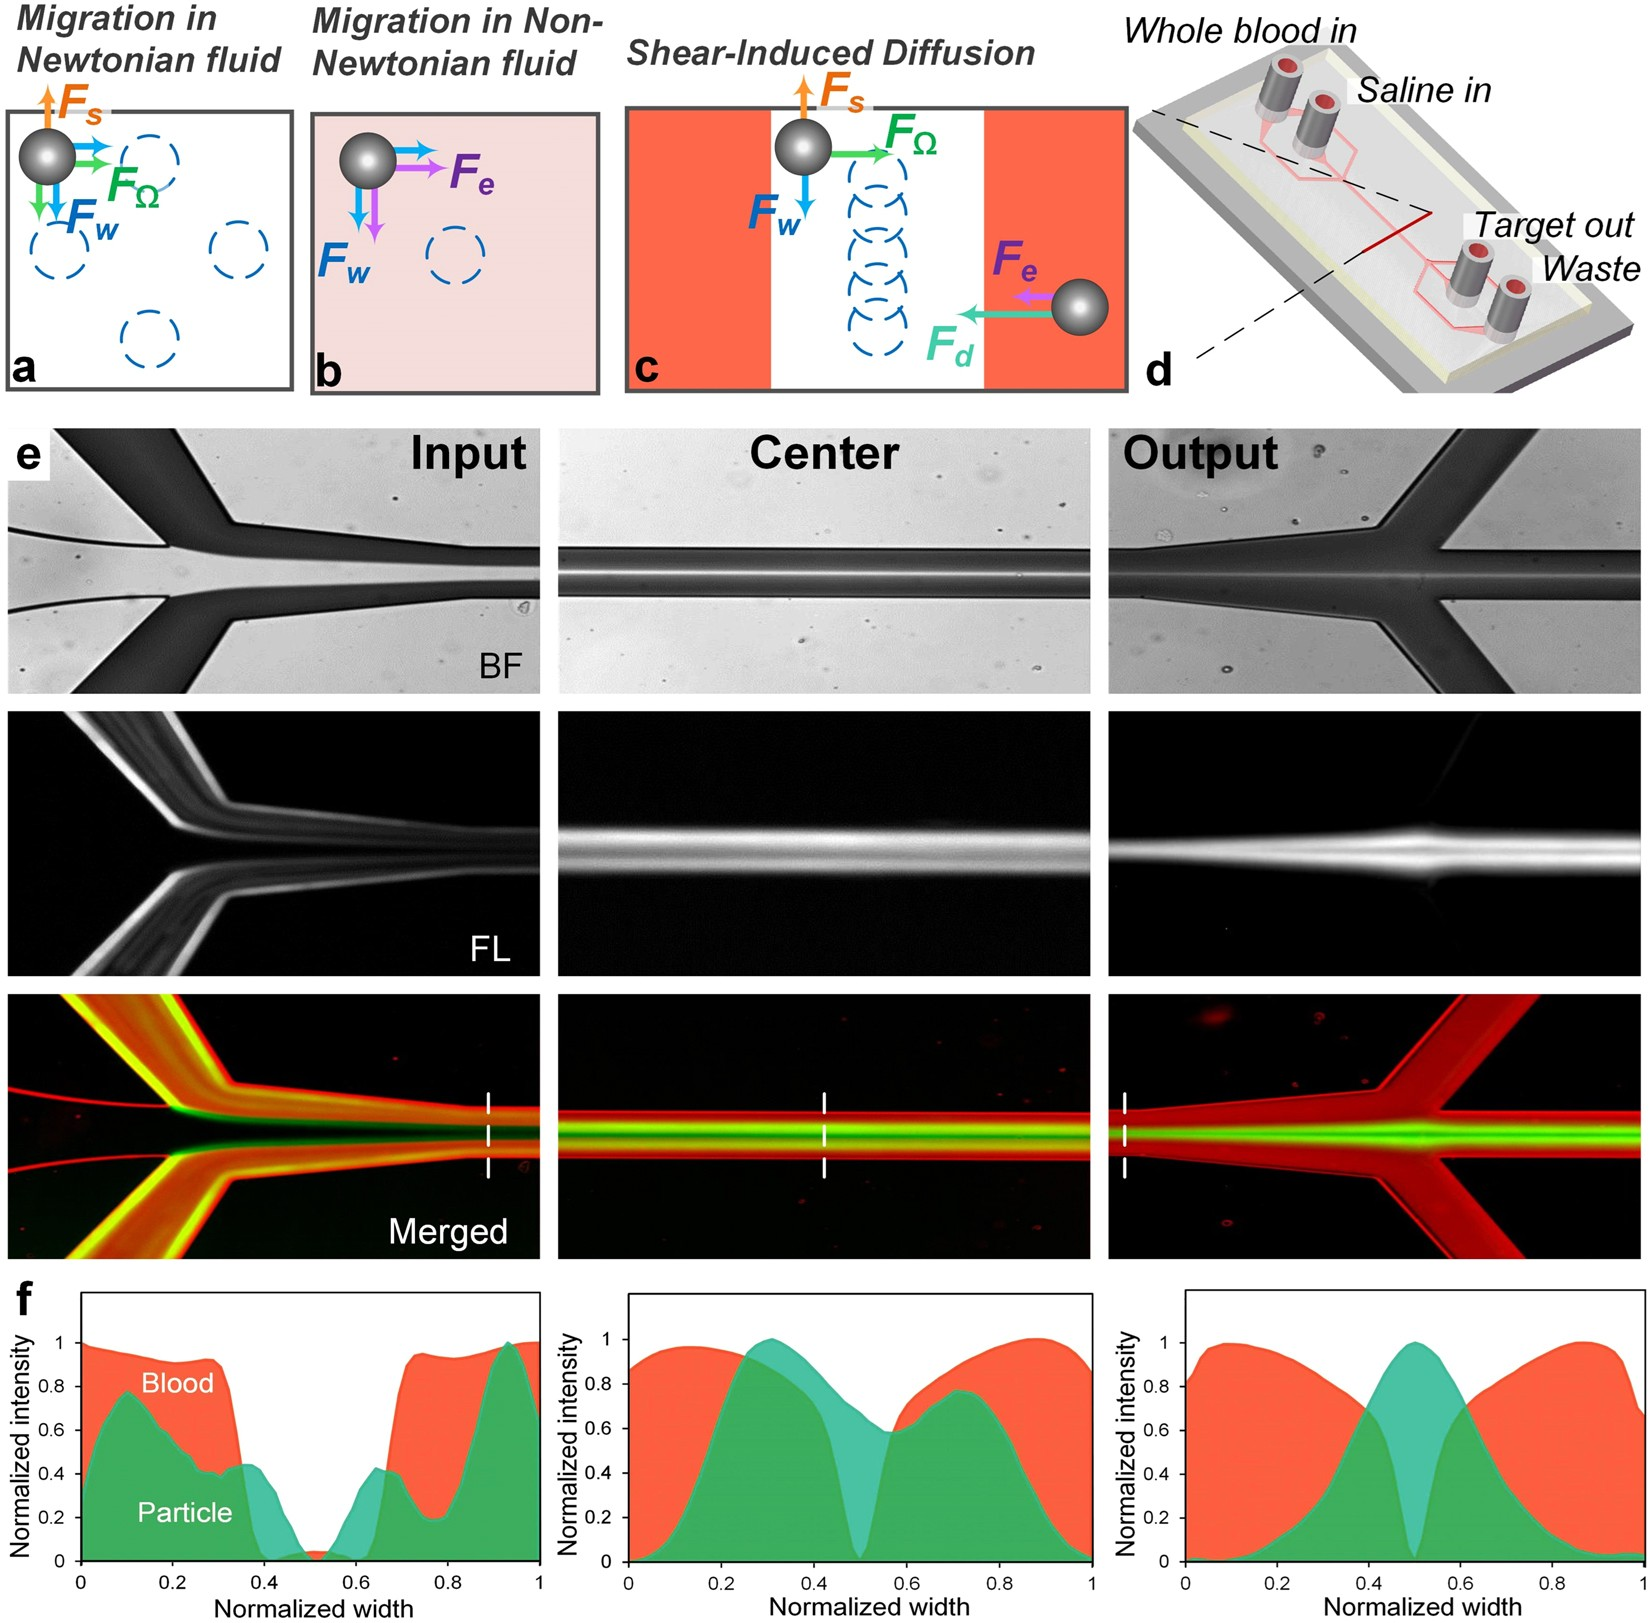 Isolation of cells from whole blood using shear-induced diffusion |  Scientific Reports